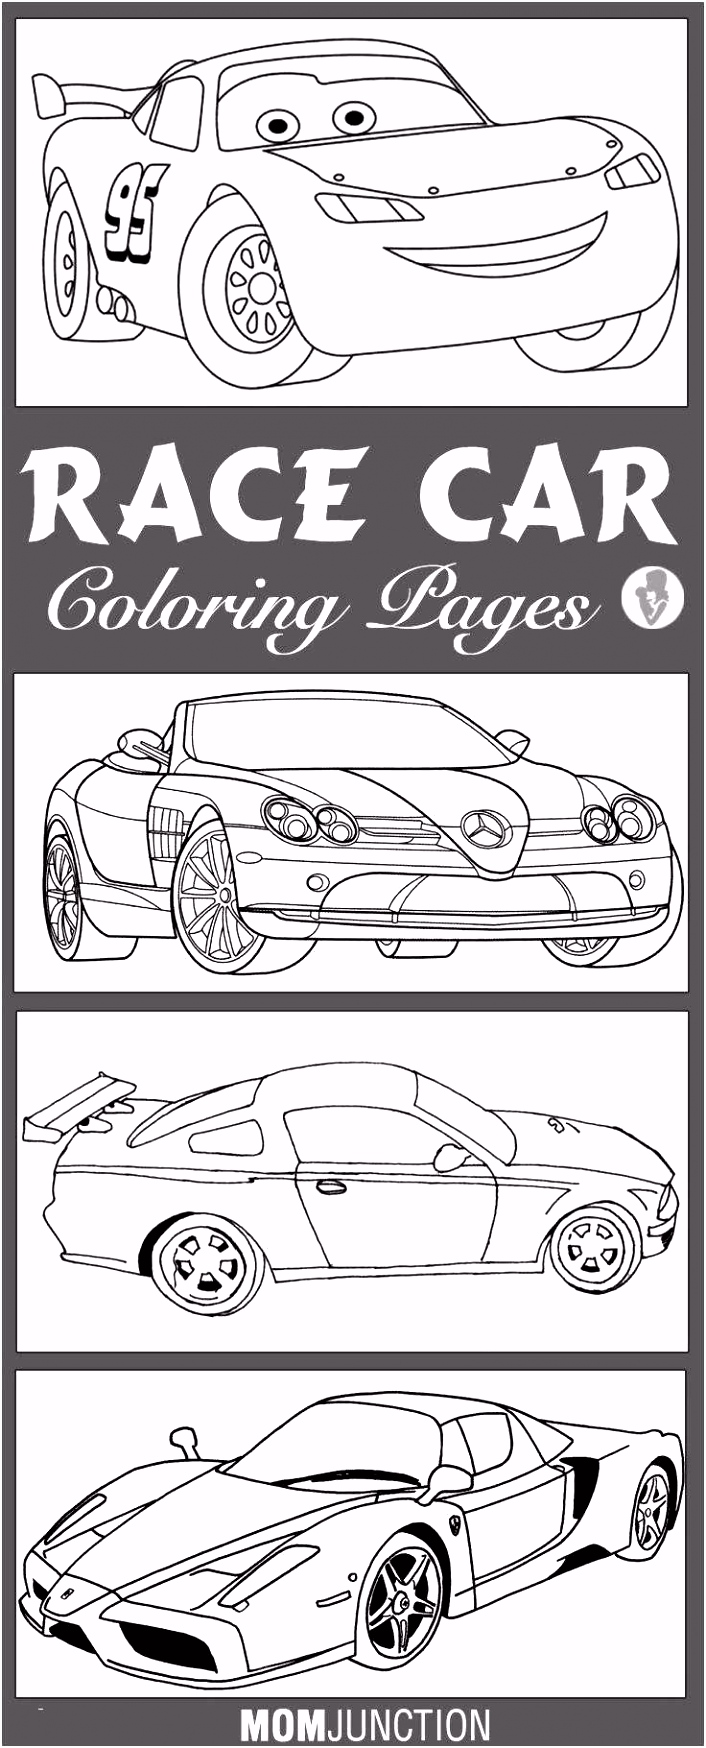 Race Car Coloring Pages Luxury Kleurplaat Cars 0d – Weekofoutrage